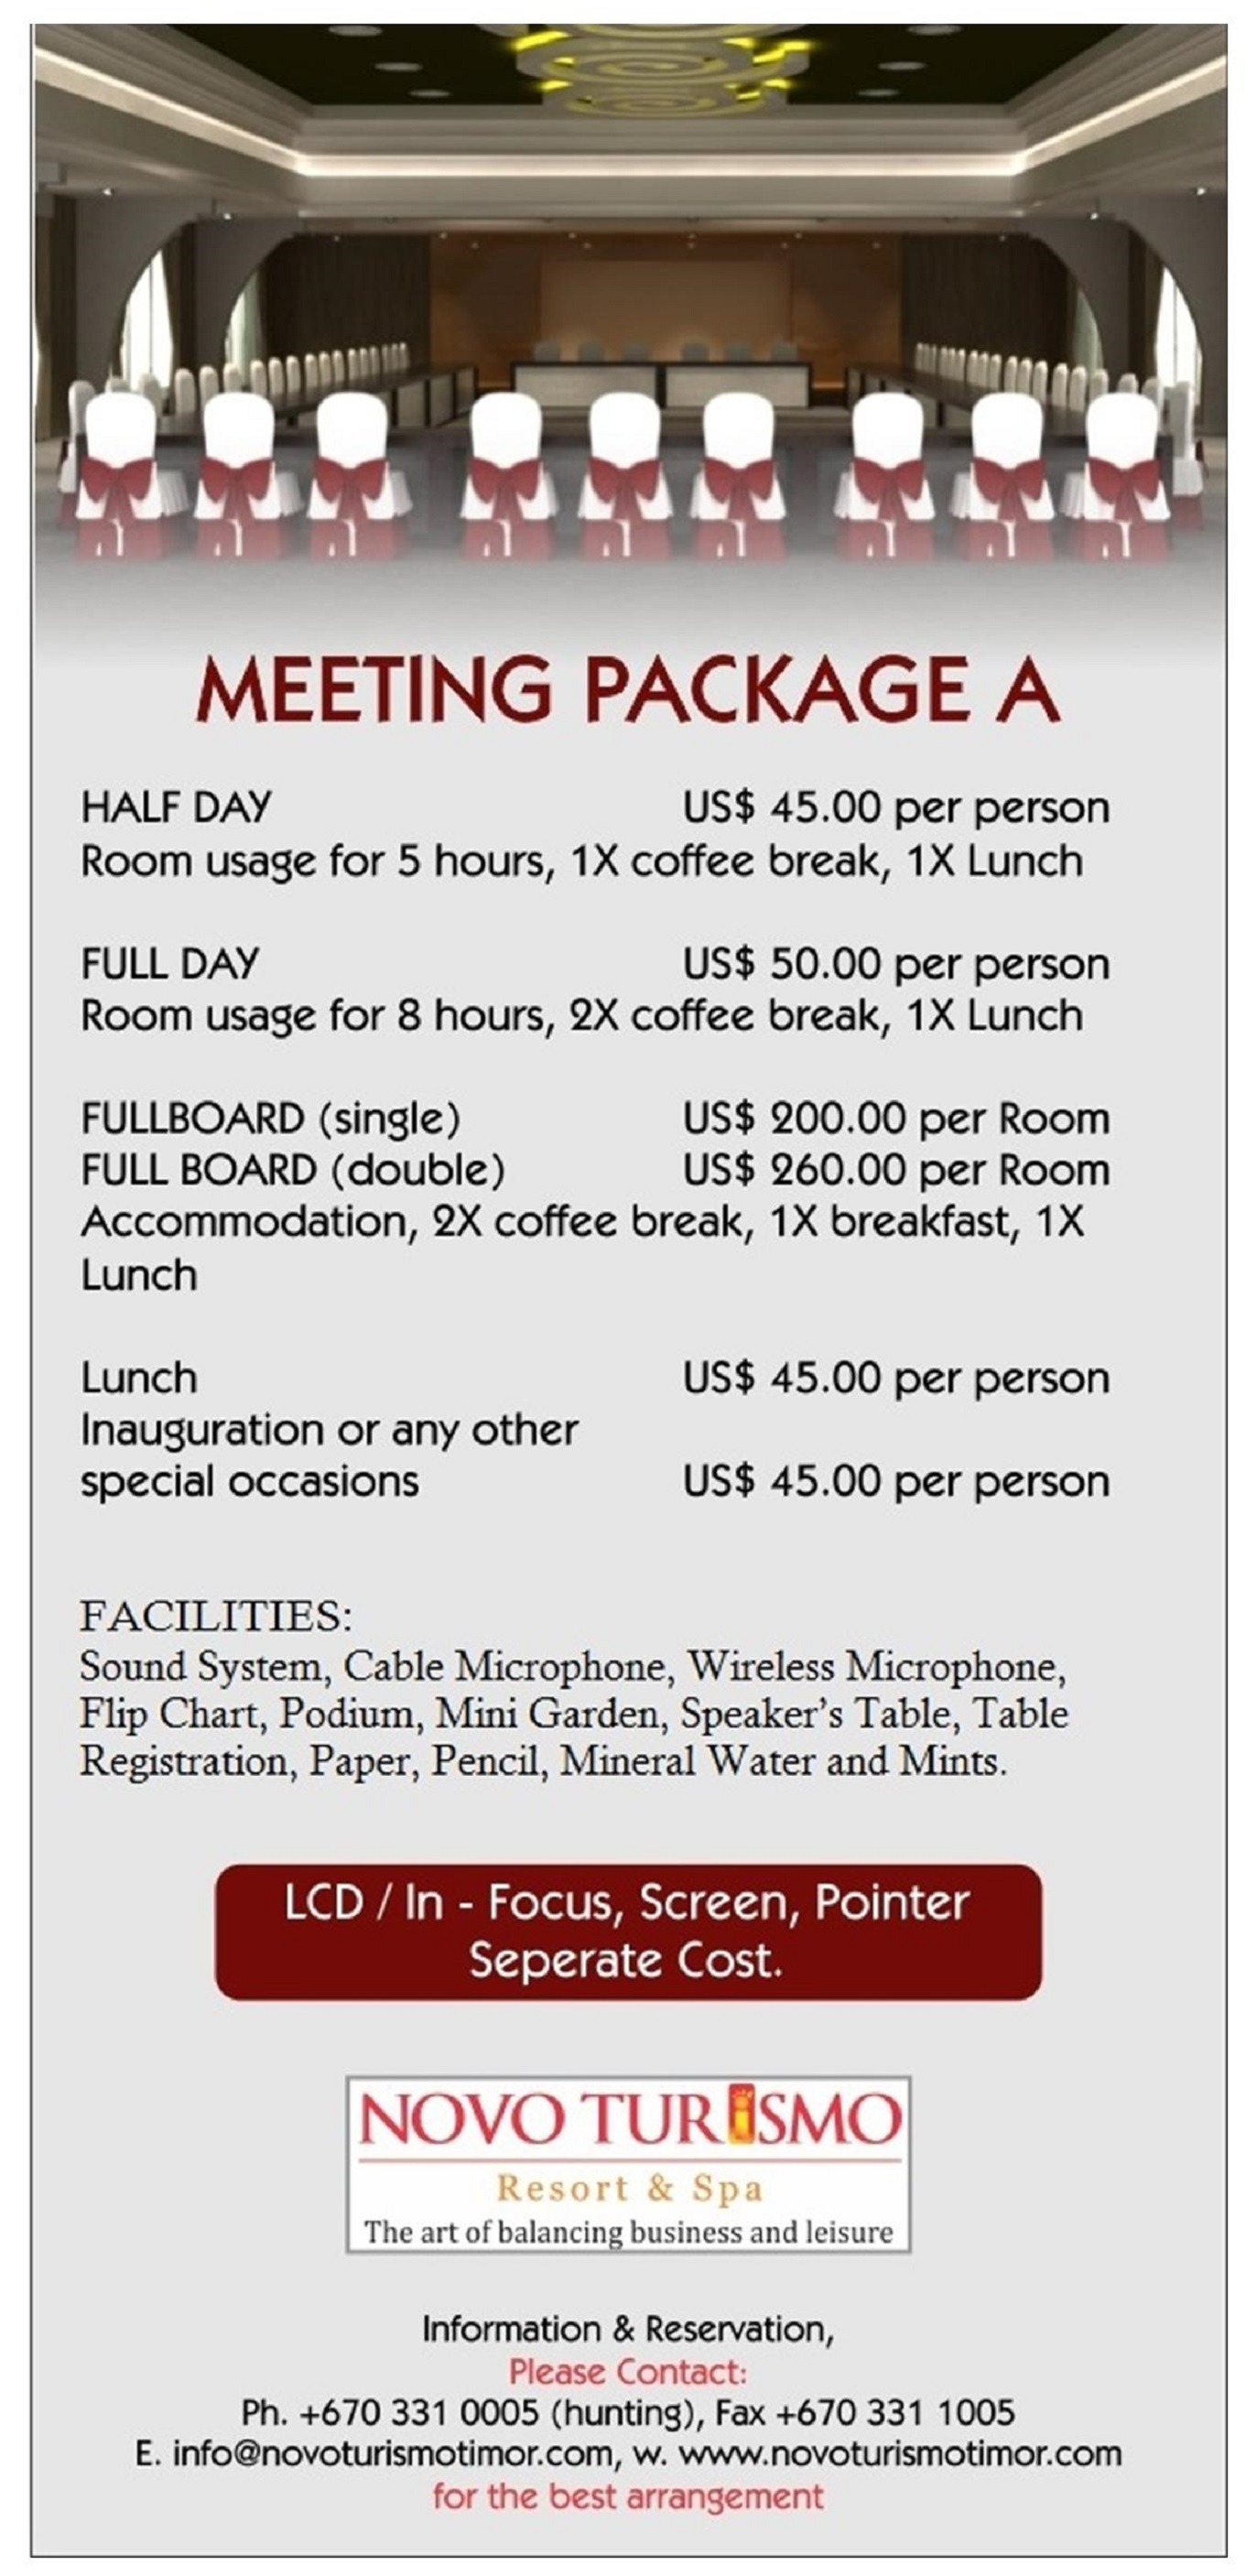 Meeting Room Package dili hotel